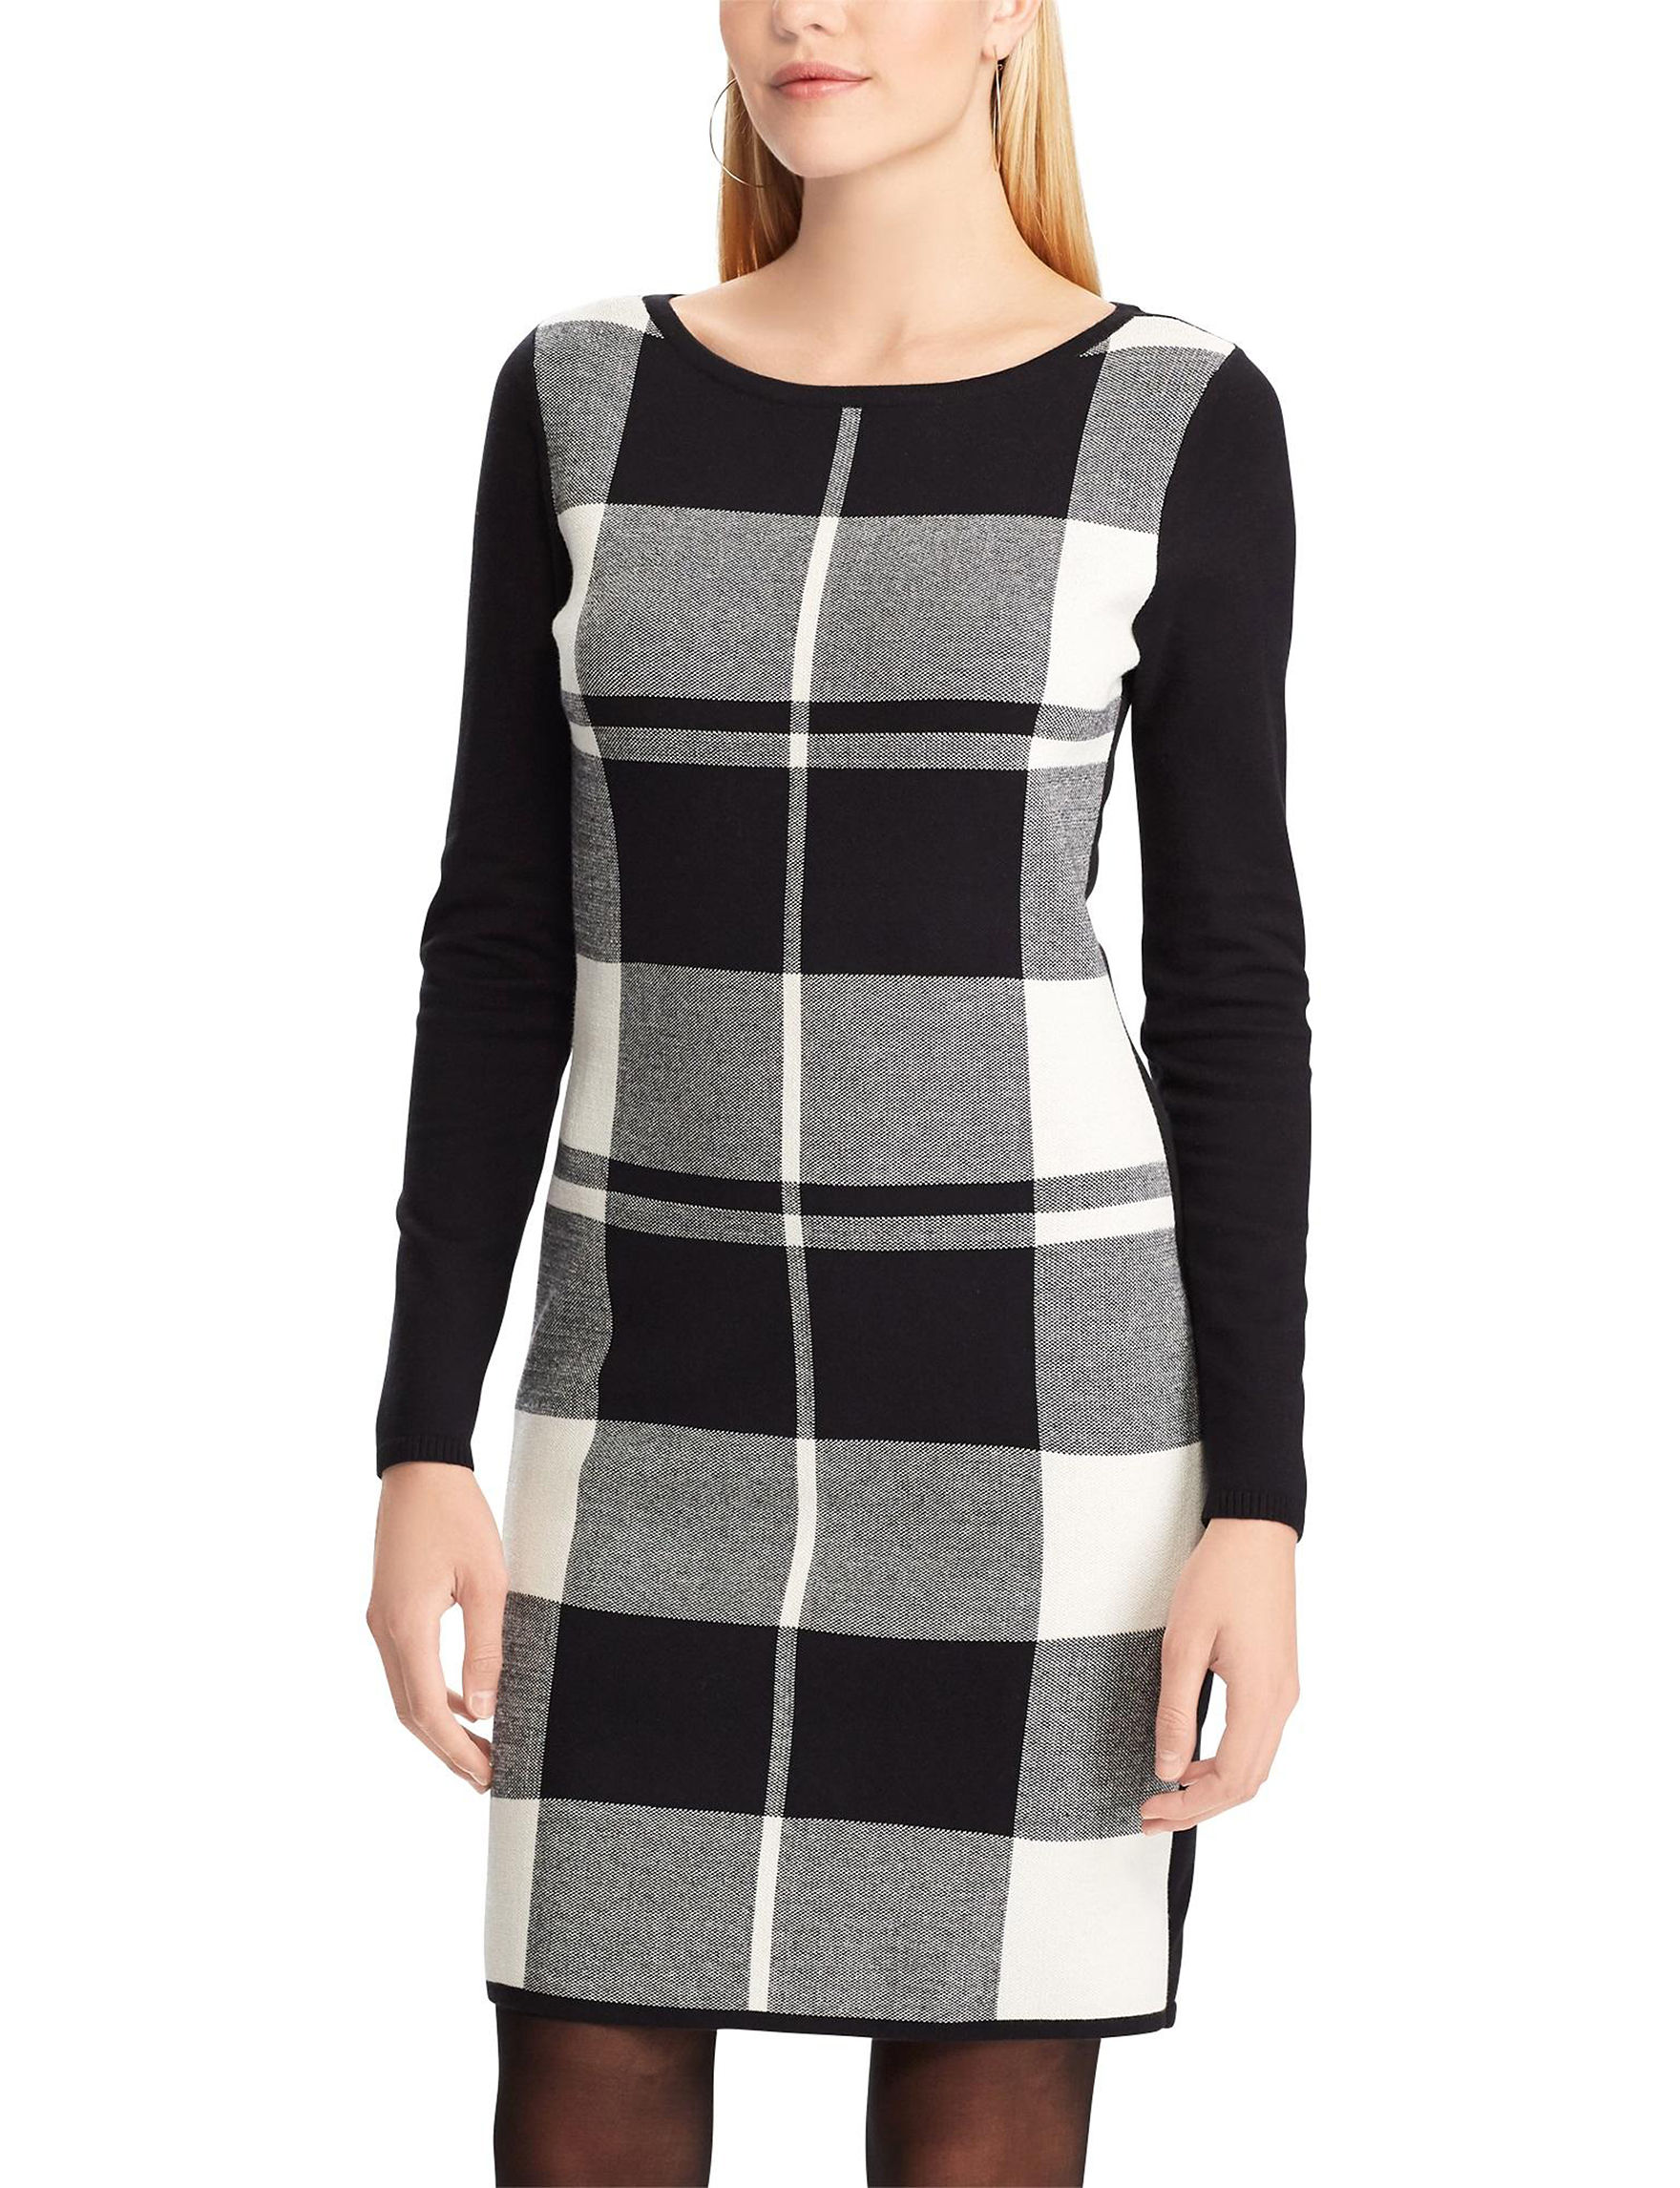 Chaps Black Multi Everyday & Casual Shift Dresses